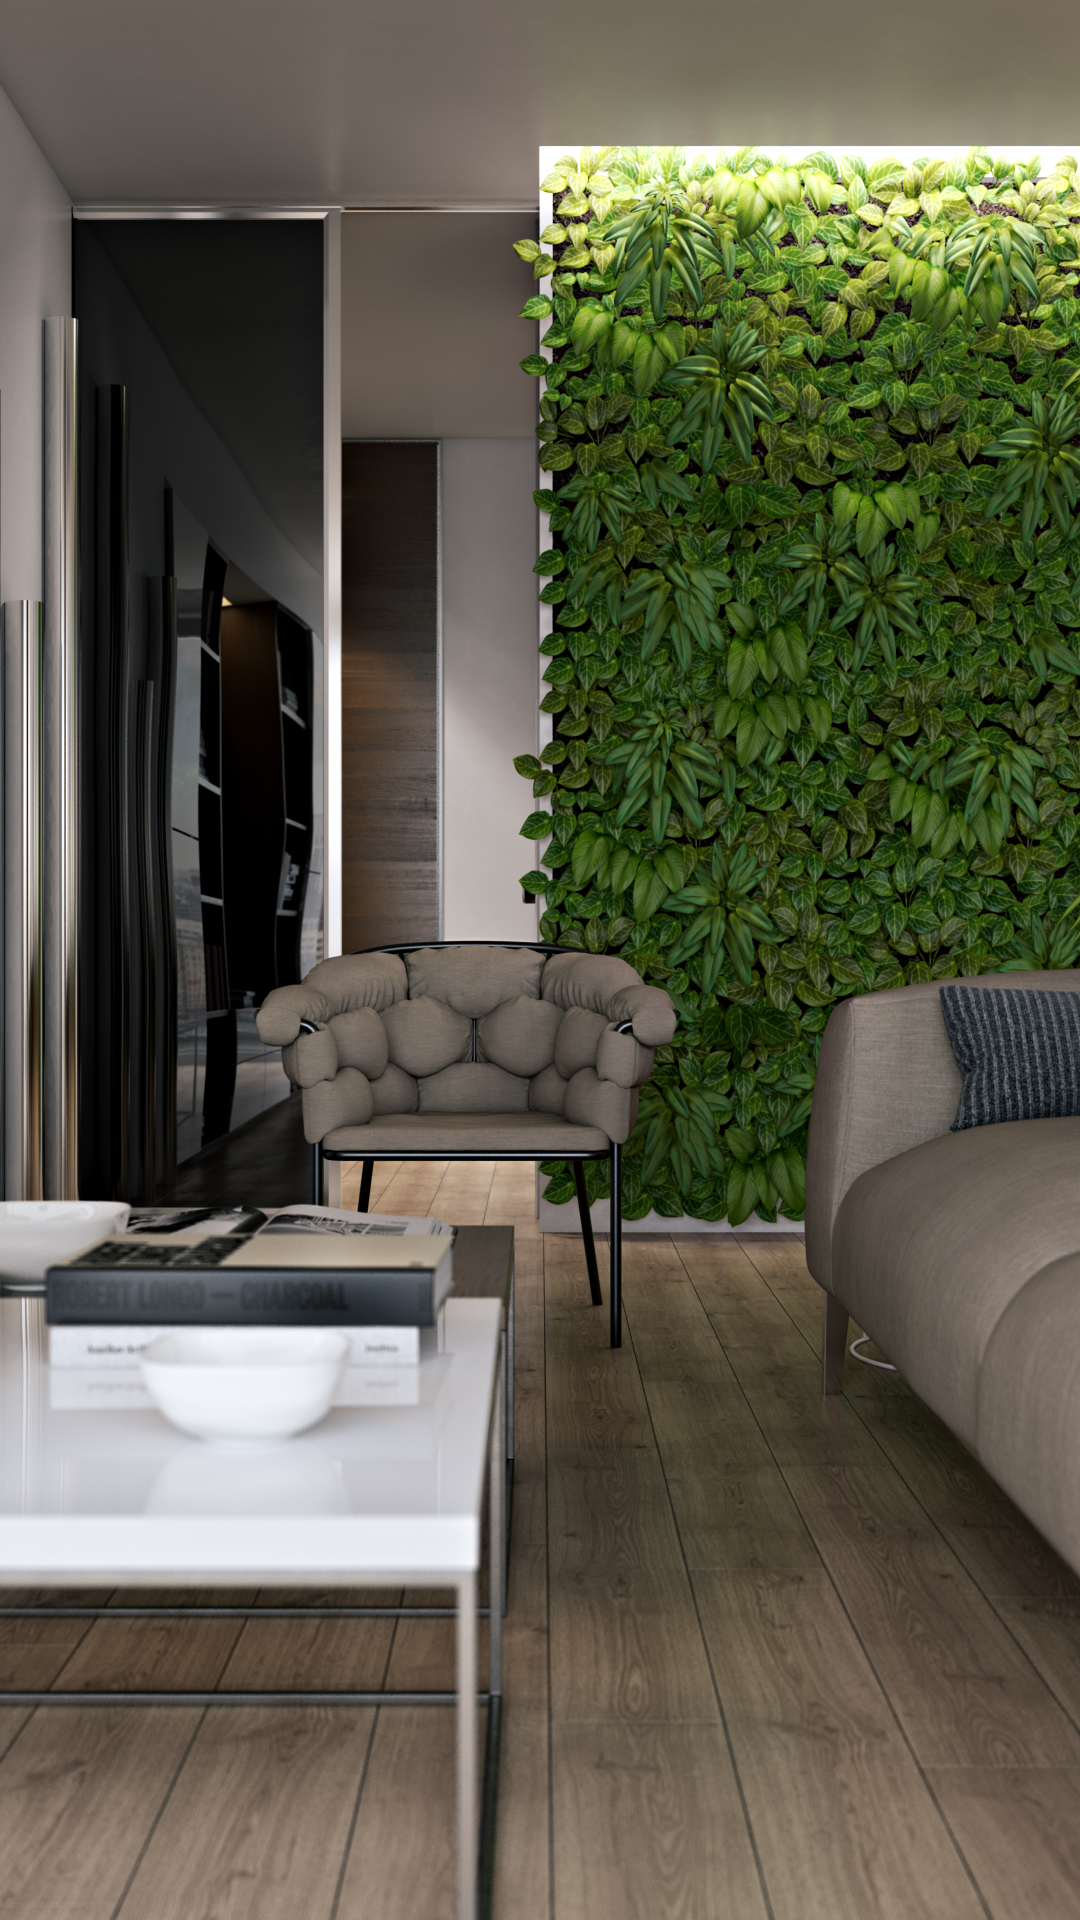 Cool Modern Chair - Verdant vertical gardens bring beauty indoors